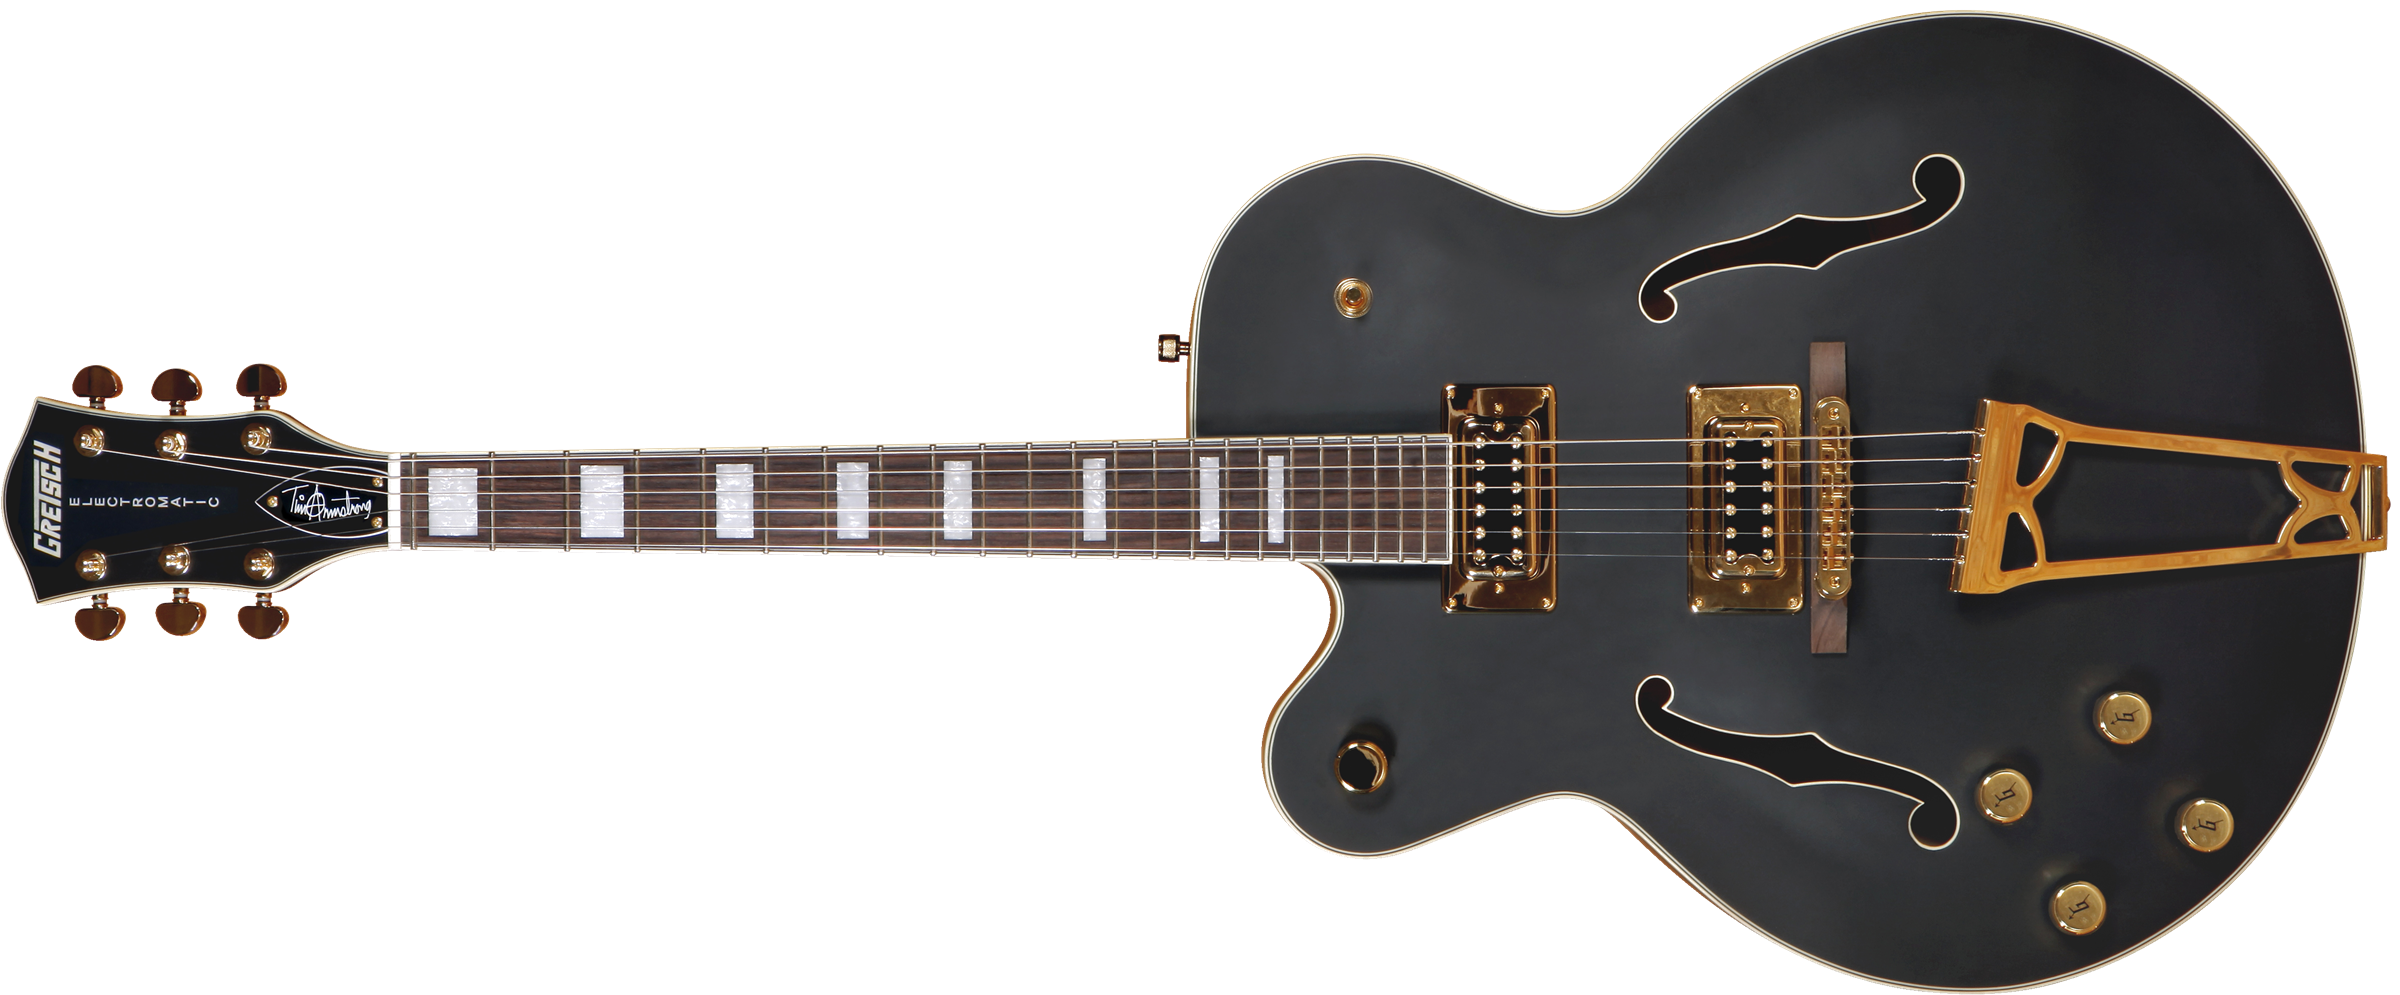 GRETSCH G5191BK Tim Armstrong Signature Electromatic Hollow Body, Left-Handed, Gold Hardware, Flat Black